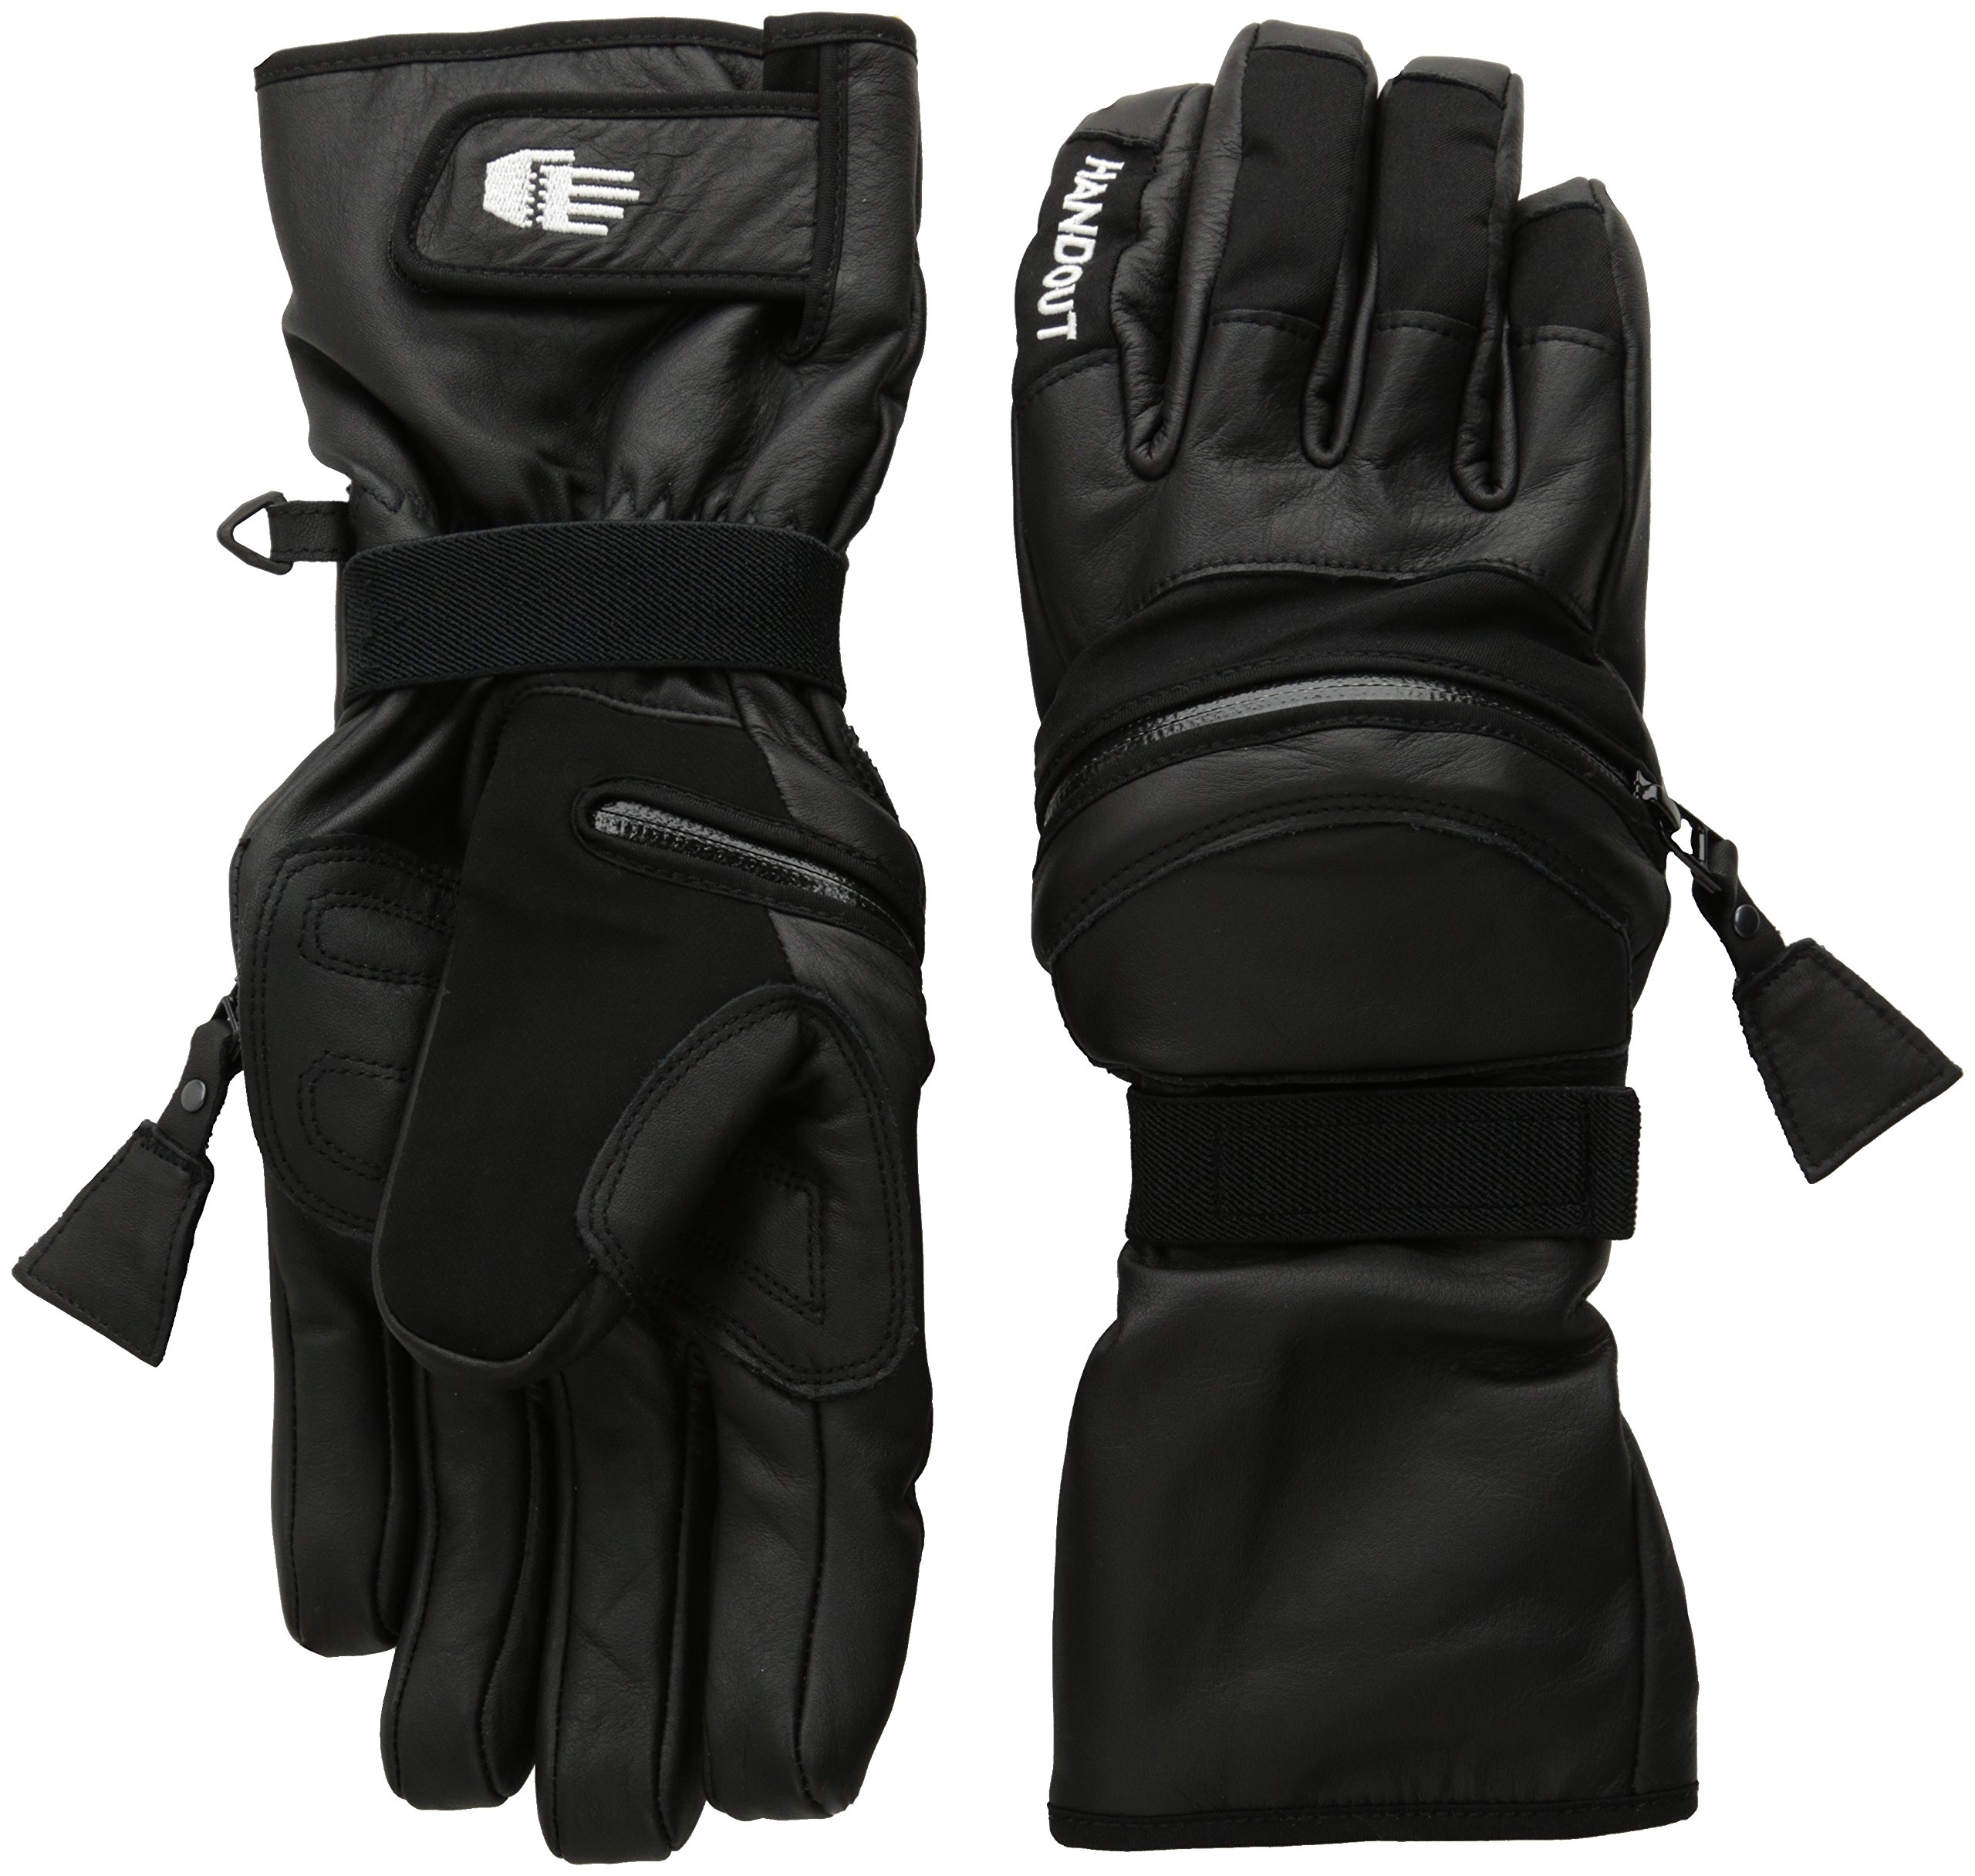 Hand Out Gloves Pro Gloves, Black, X Large